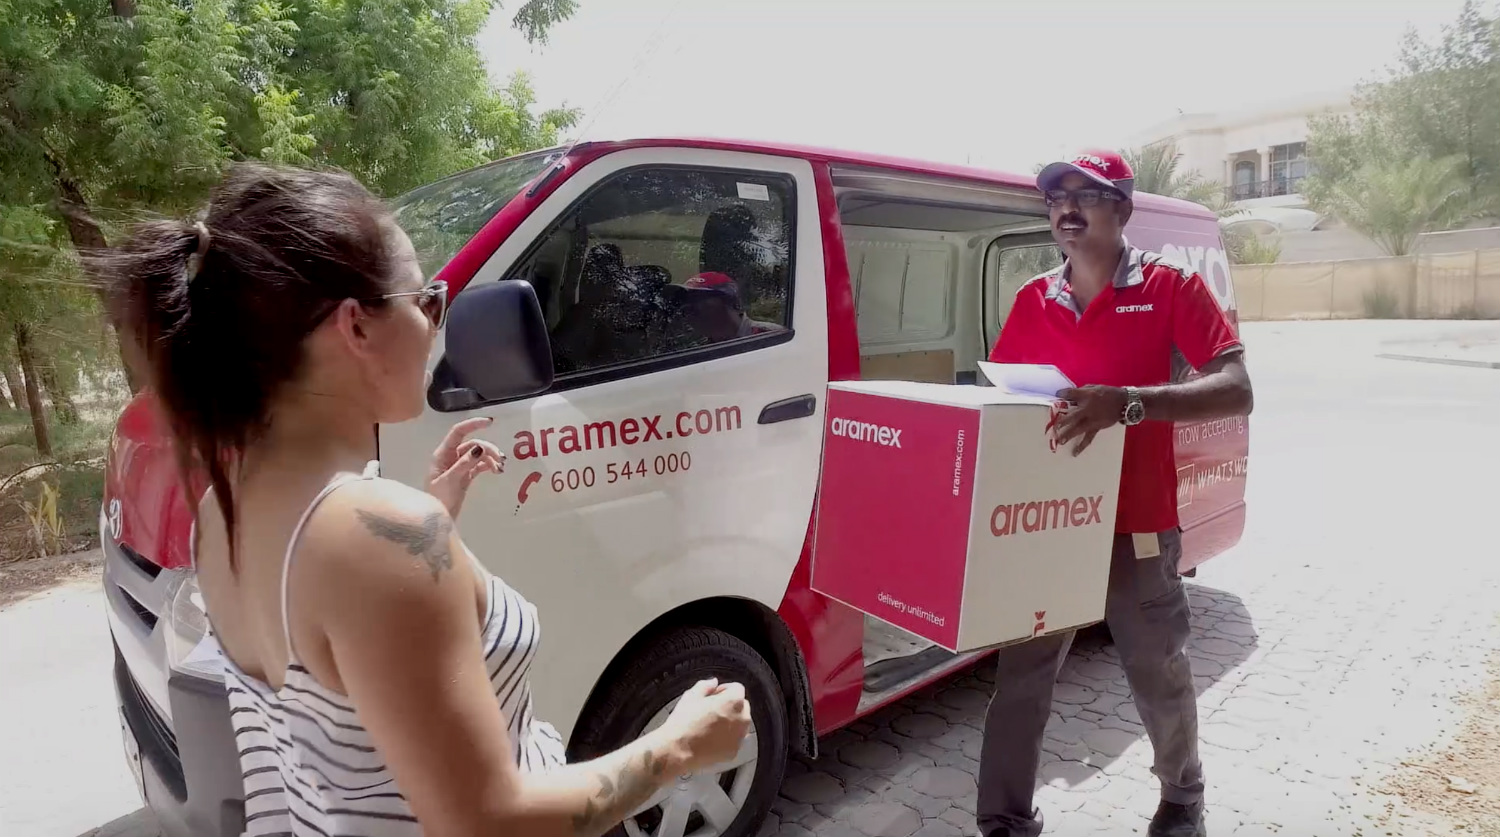 aramex delivery man handing a box to woman